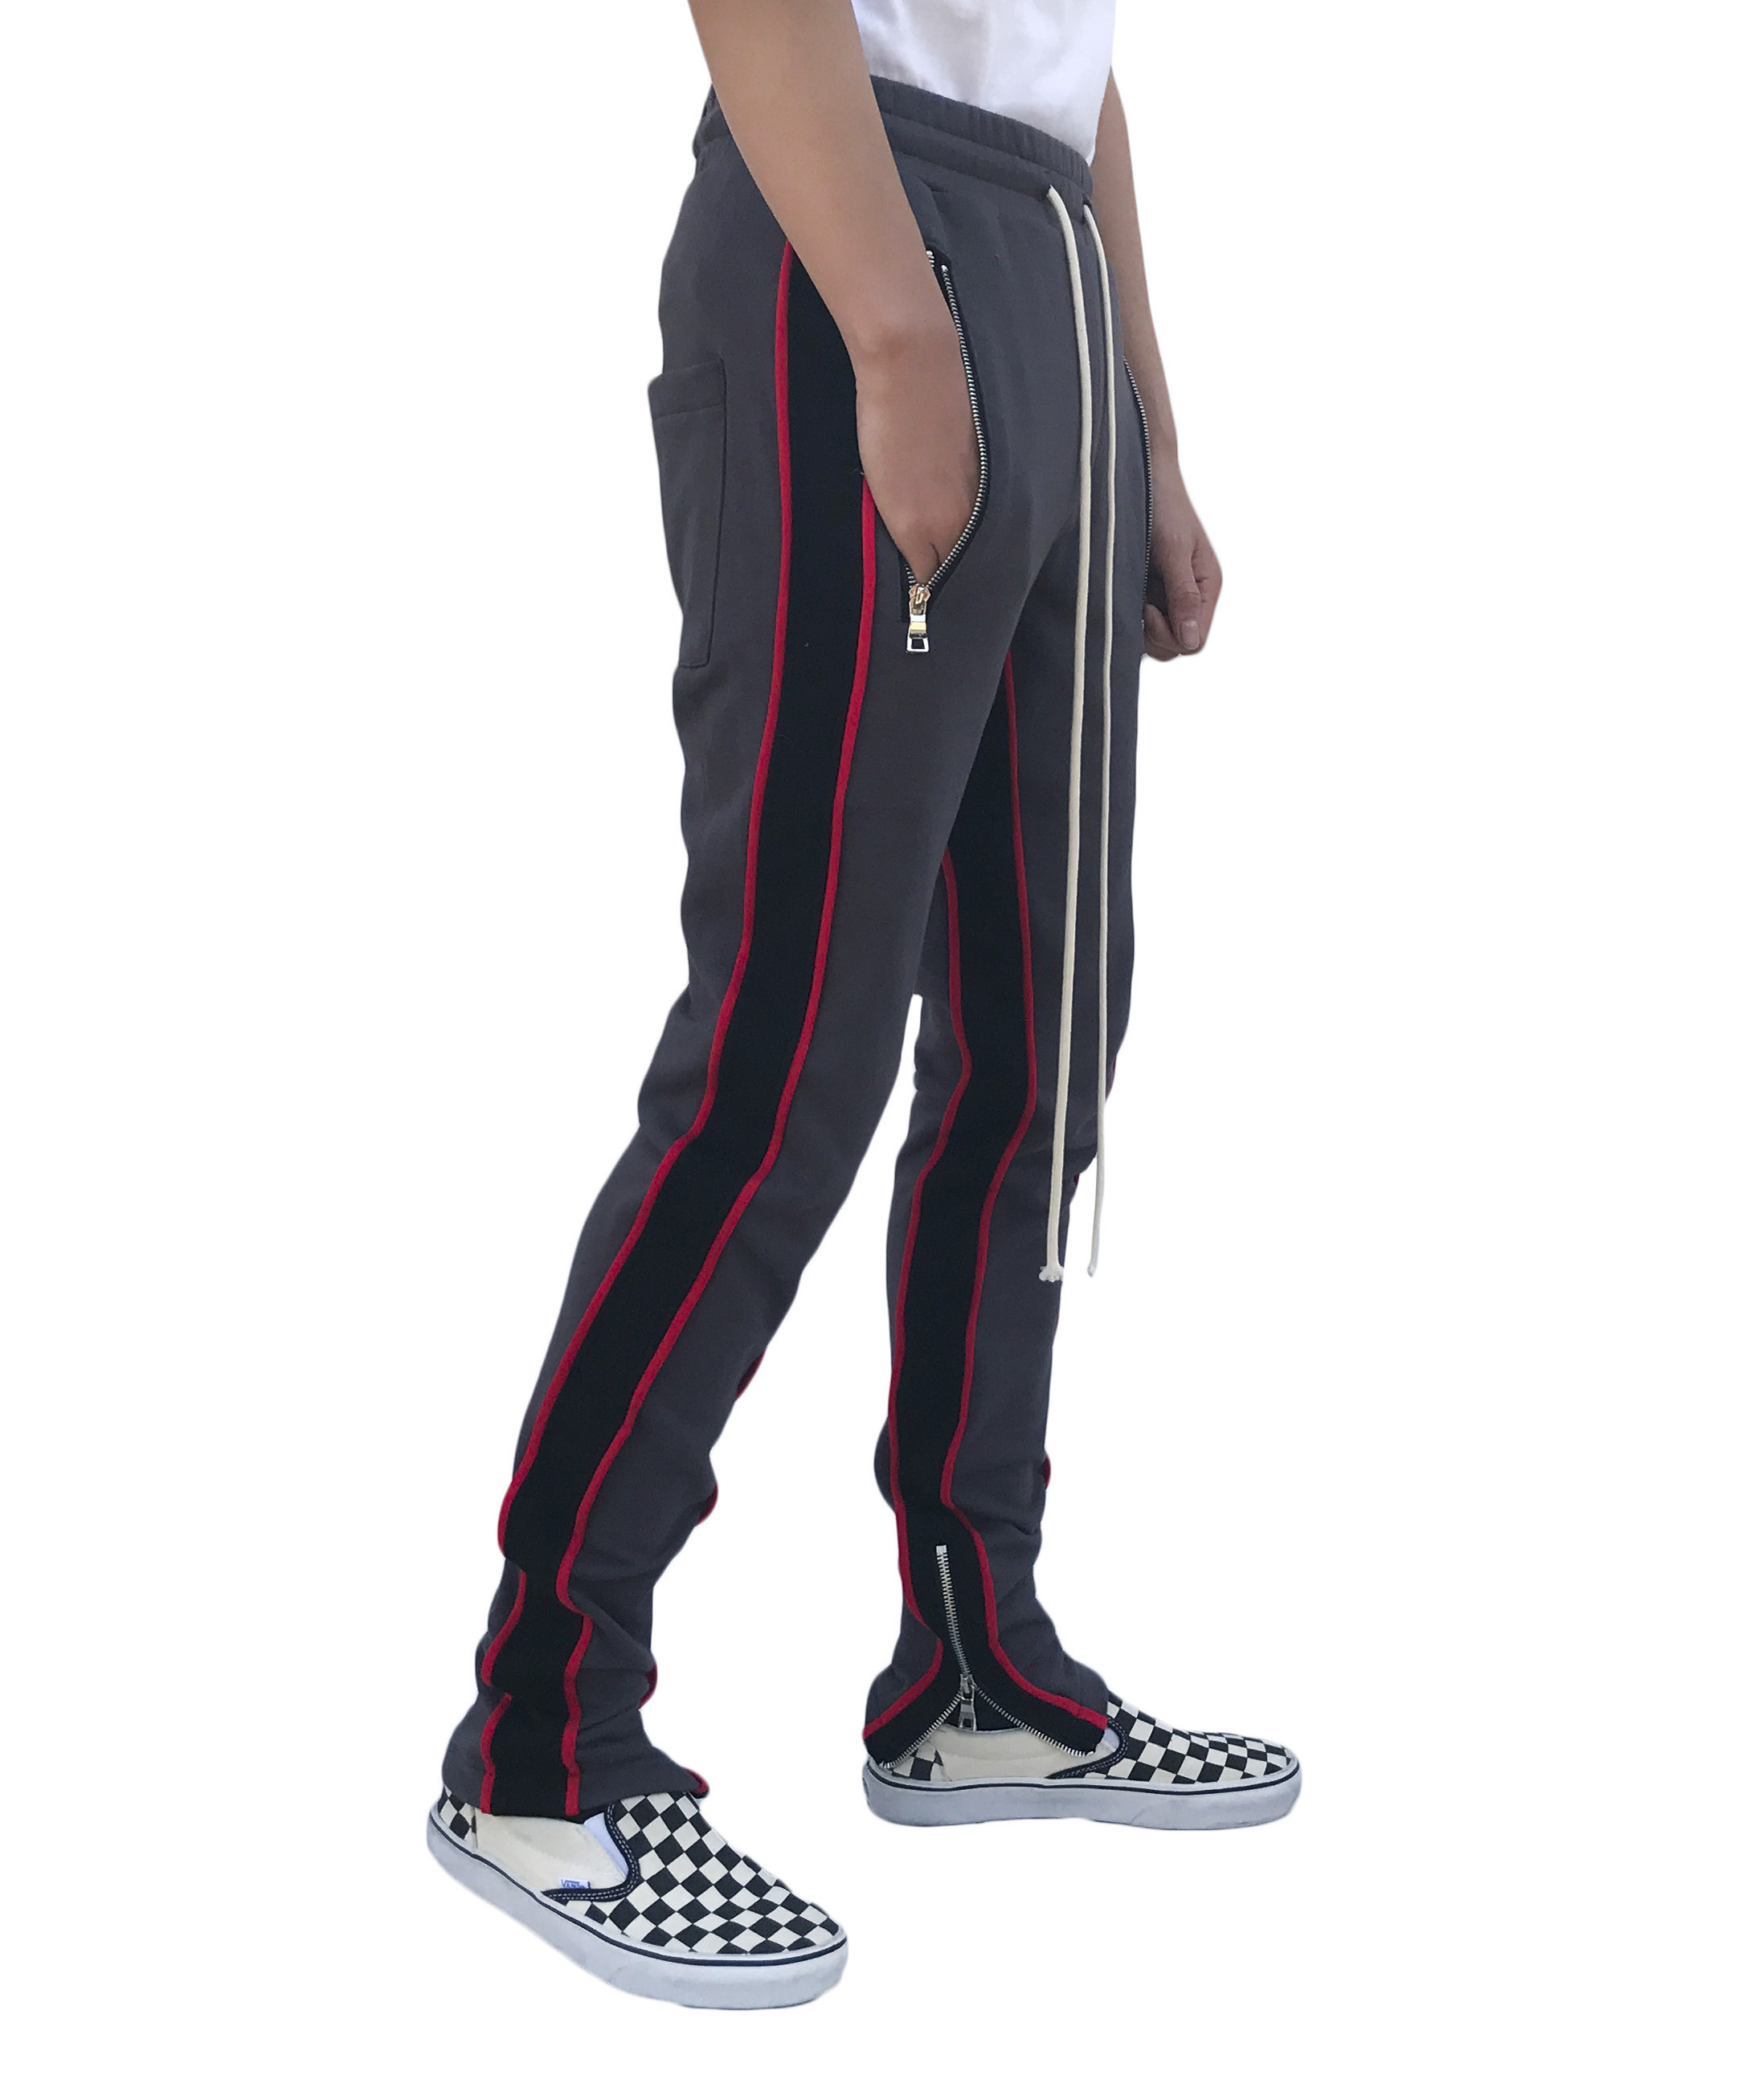 Double Striped Track Pant - Graphite